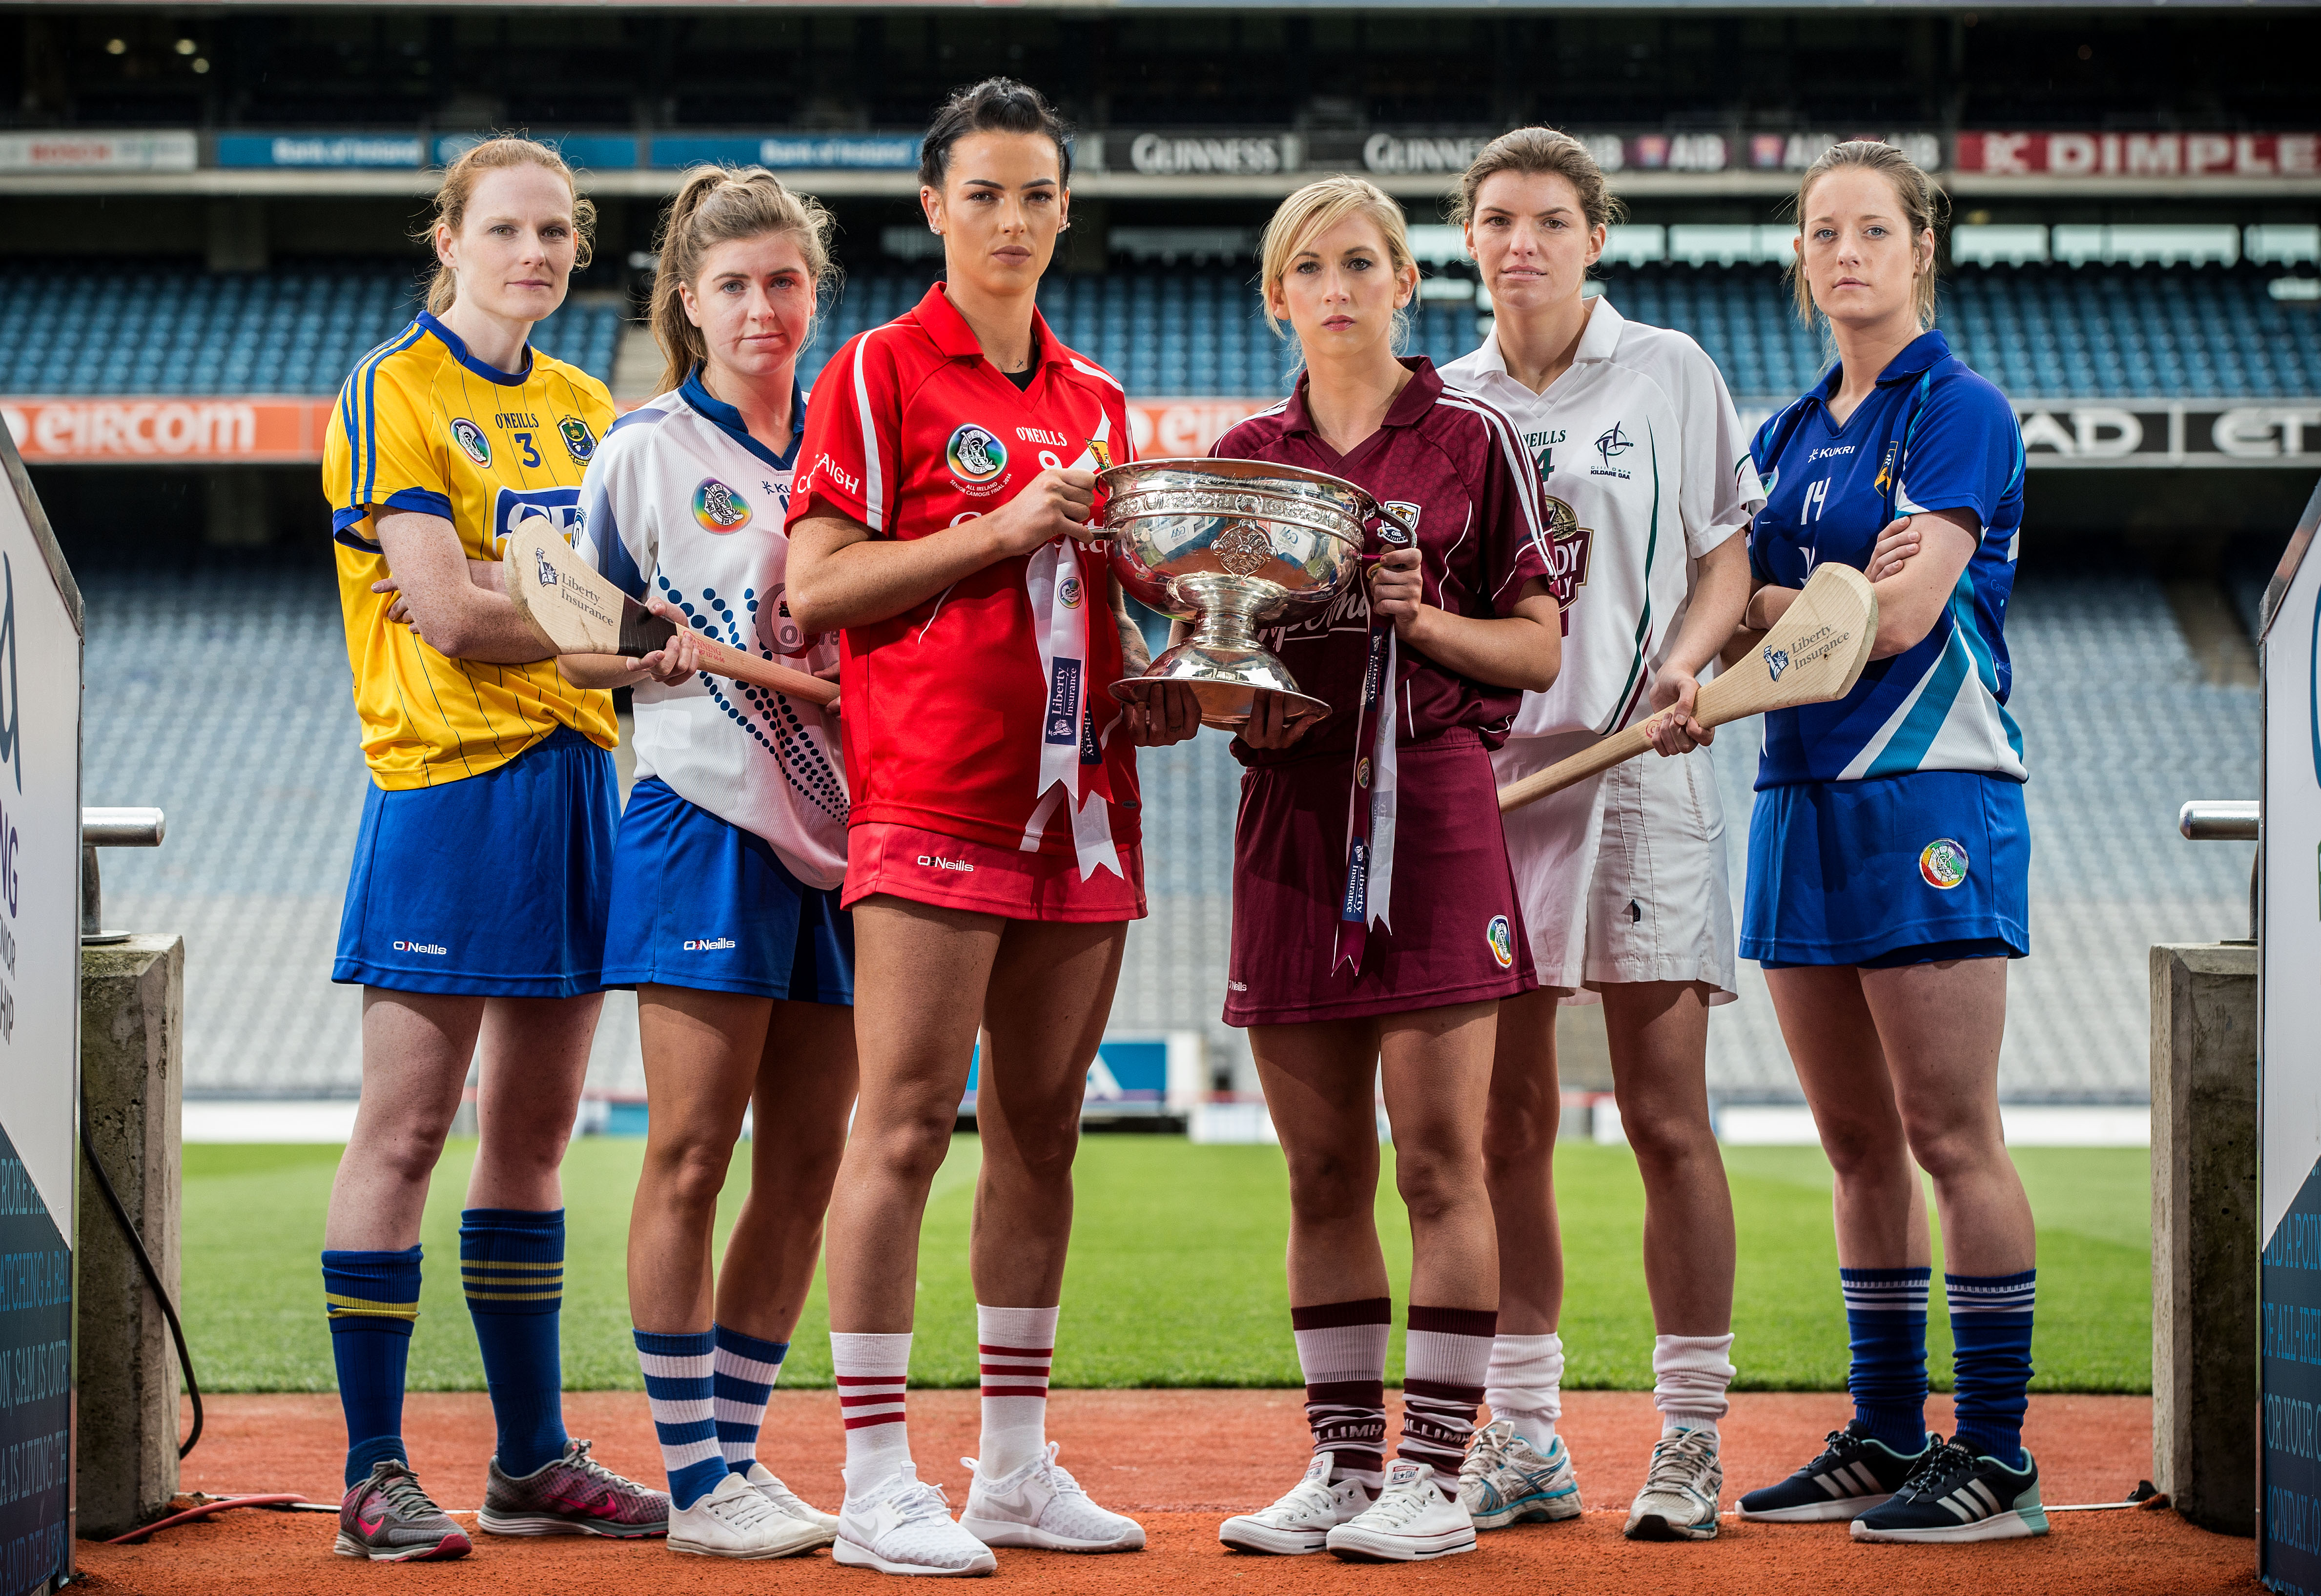 REPRO FREE***PRESS RELEASE NO REPRODUCTION FEE*** Liberty Insurance All-Ireland Final Camogie Finals CaptainsÕ Day. Croke Park, Dublin. 4/9/2015 Pictured at the Liberty Insurance All-Ireland Camogie Finals CaptainsÕ Day held in Croke Park, Thursday, September 3rd were: (l-r) Premier Junior finalist, Siobh‡n Coyle of Roscommon, WaterfordÕs Caithr'ona McGlone, Intermediate finalist, Ashling Thompson of defending Senior champions Cork, Galway Senior captain Niamh Kilkenny, KildareÕs Susie OÕCarroll, Intermediate finalist, and Niamh Dollard, Laois, premier Junior finalist. The Camogie Association will use Hawk-Eye, the point technology system on All-Ireland Finals Day on September 13th and are the first female Gaelic Games organisation to utilise the system. Defending champions Cork are going for their second title-in-a-row and will be aiming to equal DublinÕs record of 25 senior All-Ireland titles. Full details on the upcoming games are available on www.camogie.ie Mandatory Credit ©INPHO/Cathal Noonan